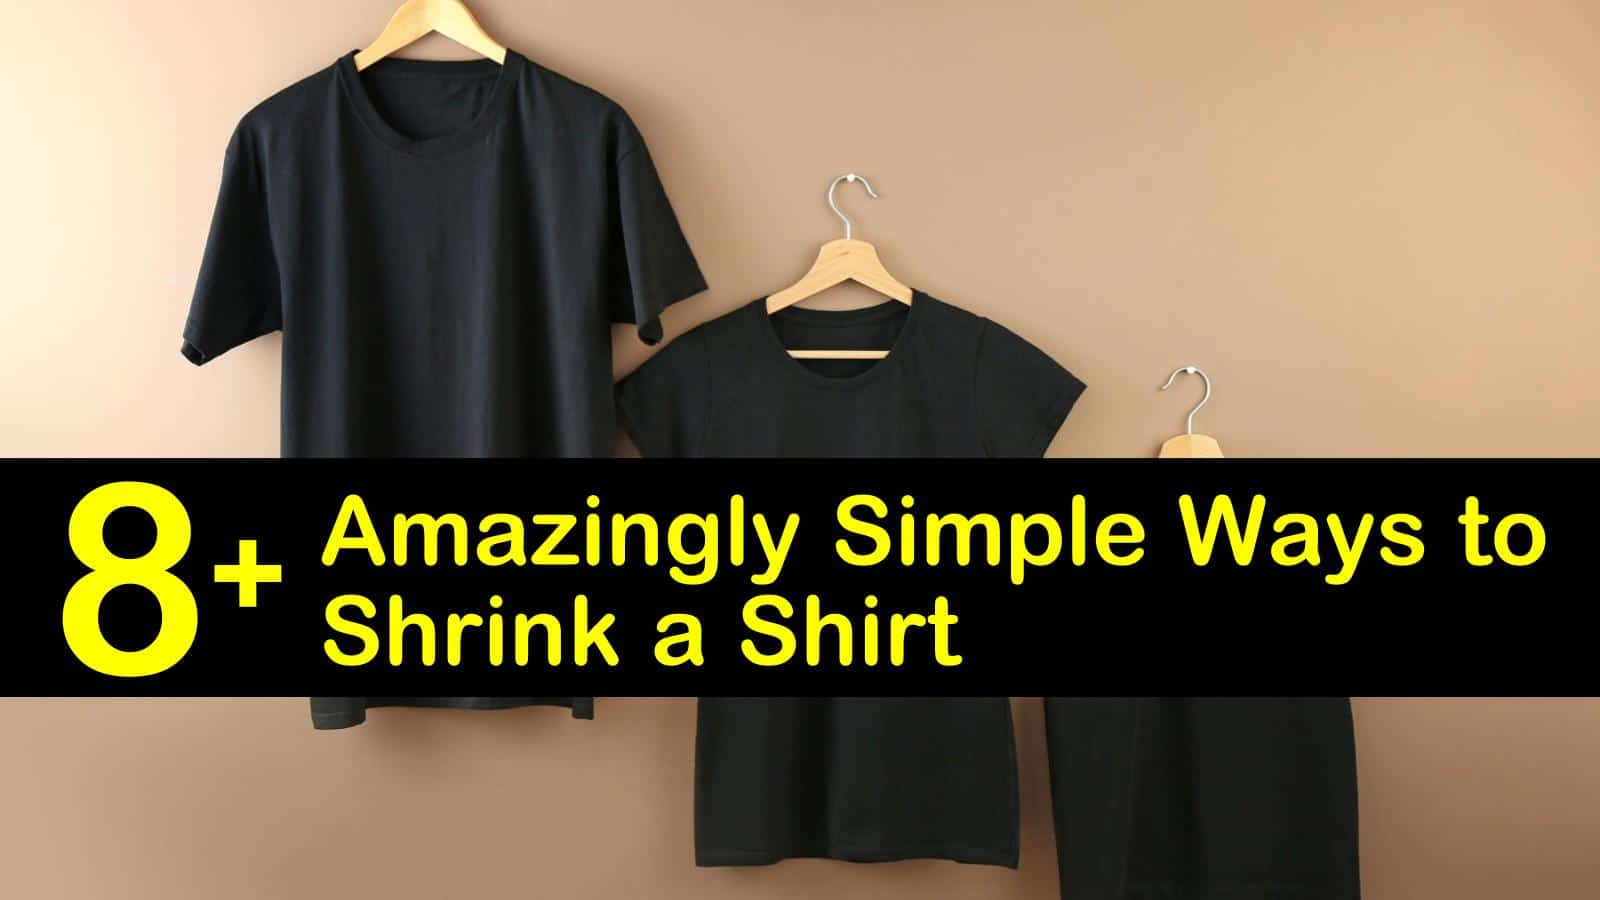 12+ Amazingly SImple Ways to Shrink a Shirt